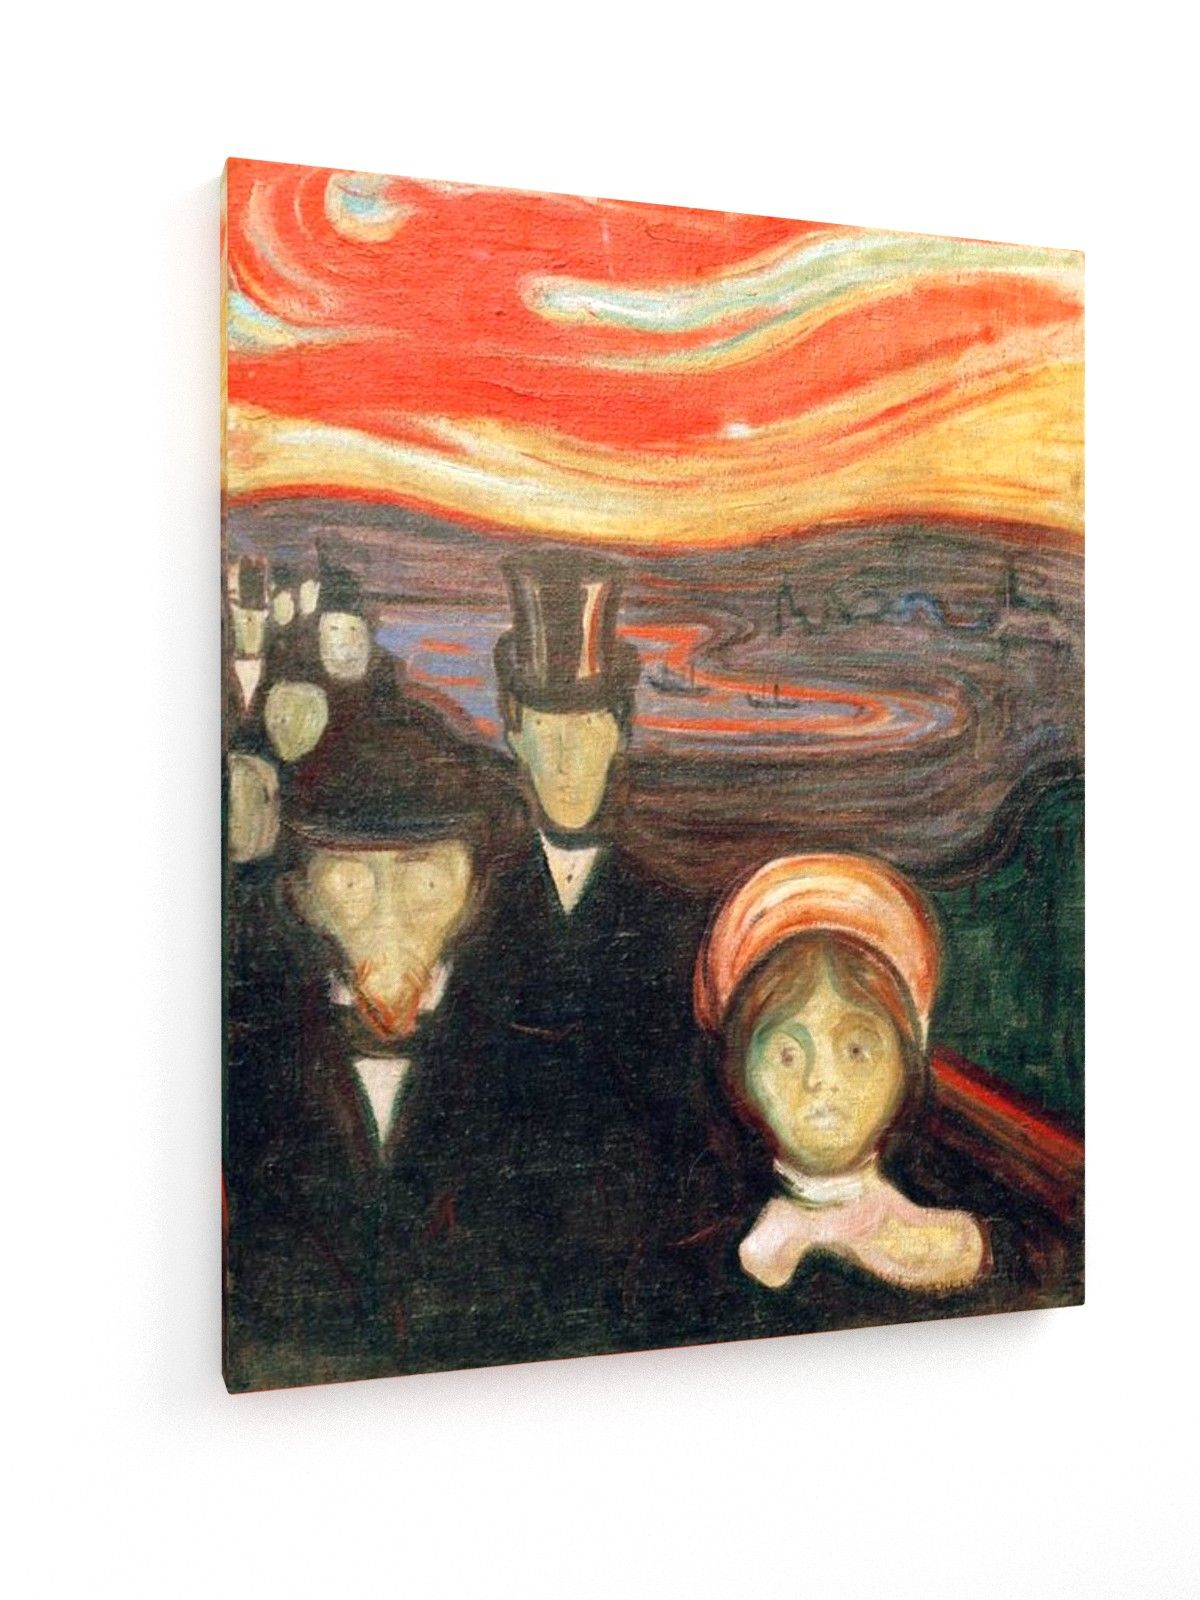 Edvard Munch - Fear - 1894 #Edvard #Munch #weewado #edvard #munch #Art #Nouveau #psychology